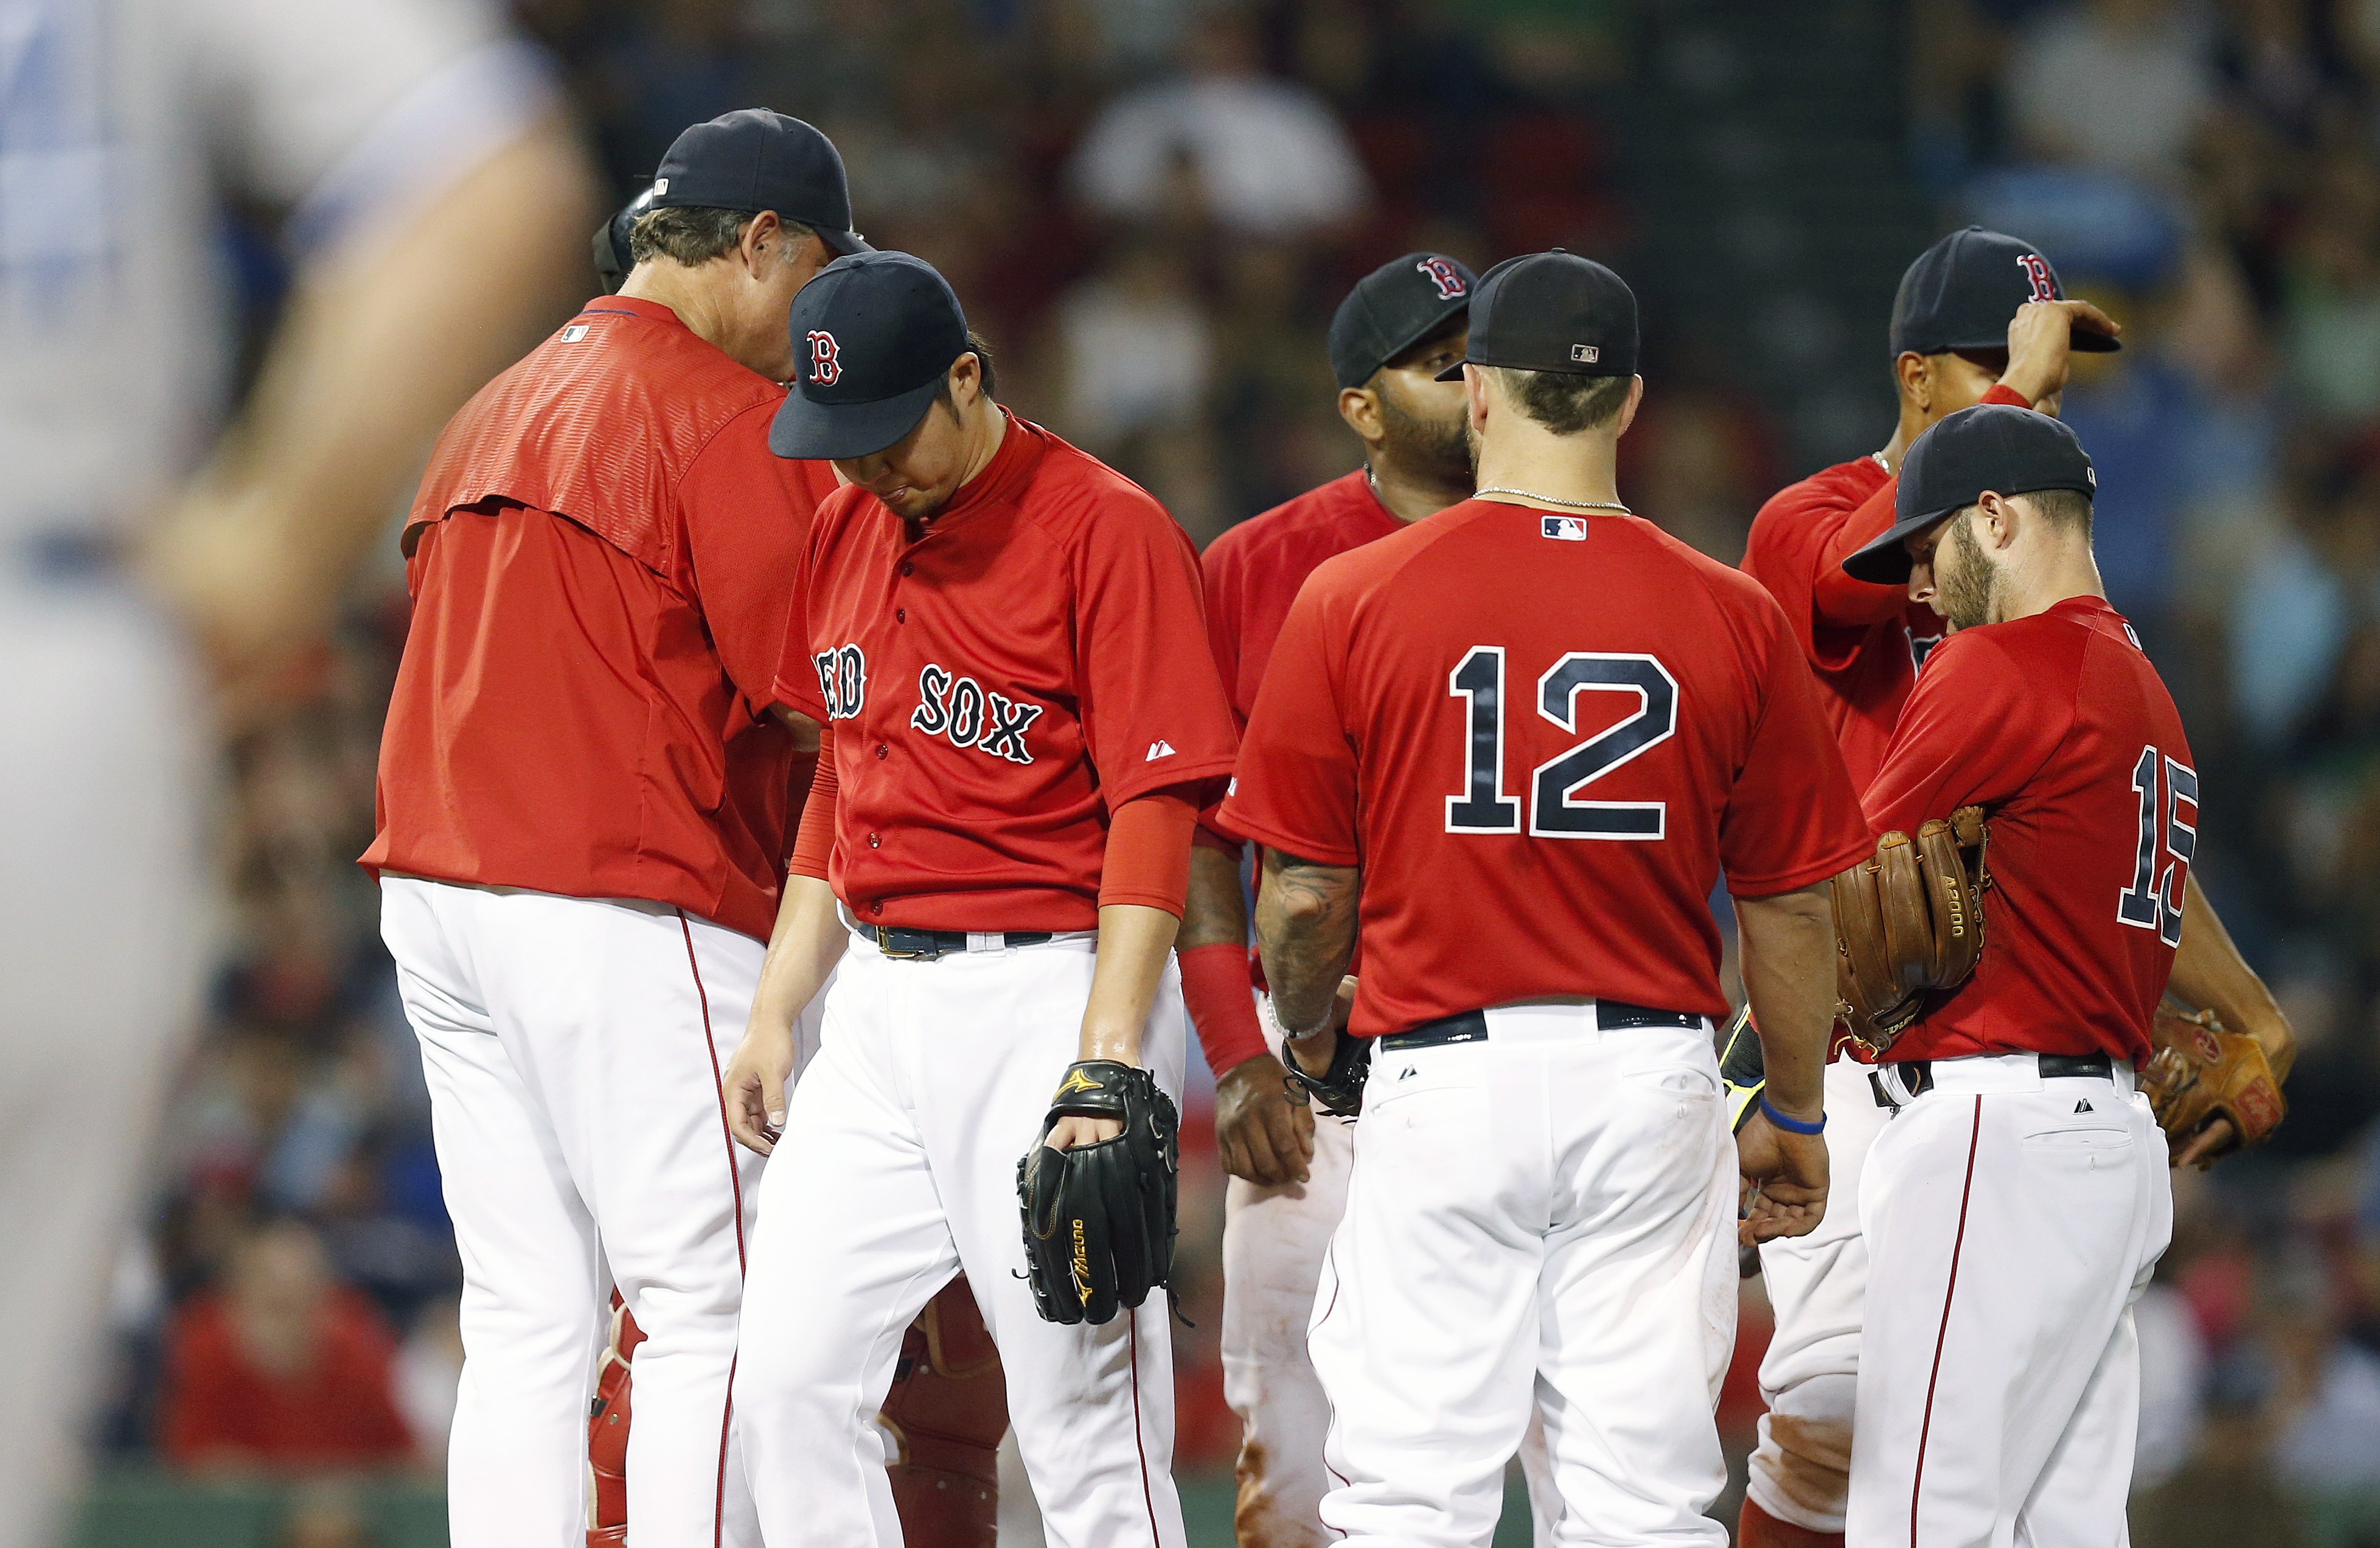 Boston Red Sox's Junichi Tazawa, second from left, walks past manager John Farrell, left, after being taken out during the seventh inning of a baseball game against the Toronto Blue Jays in Boston, Friday, June 12, 2015. (AP Photo/Michael Dwyer)